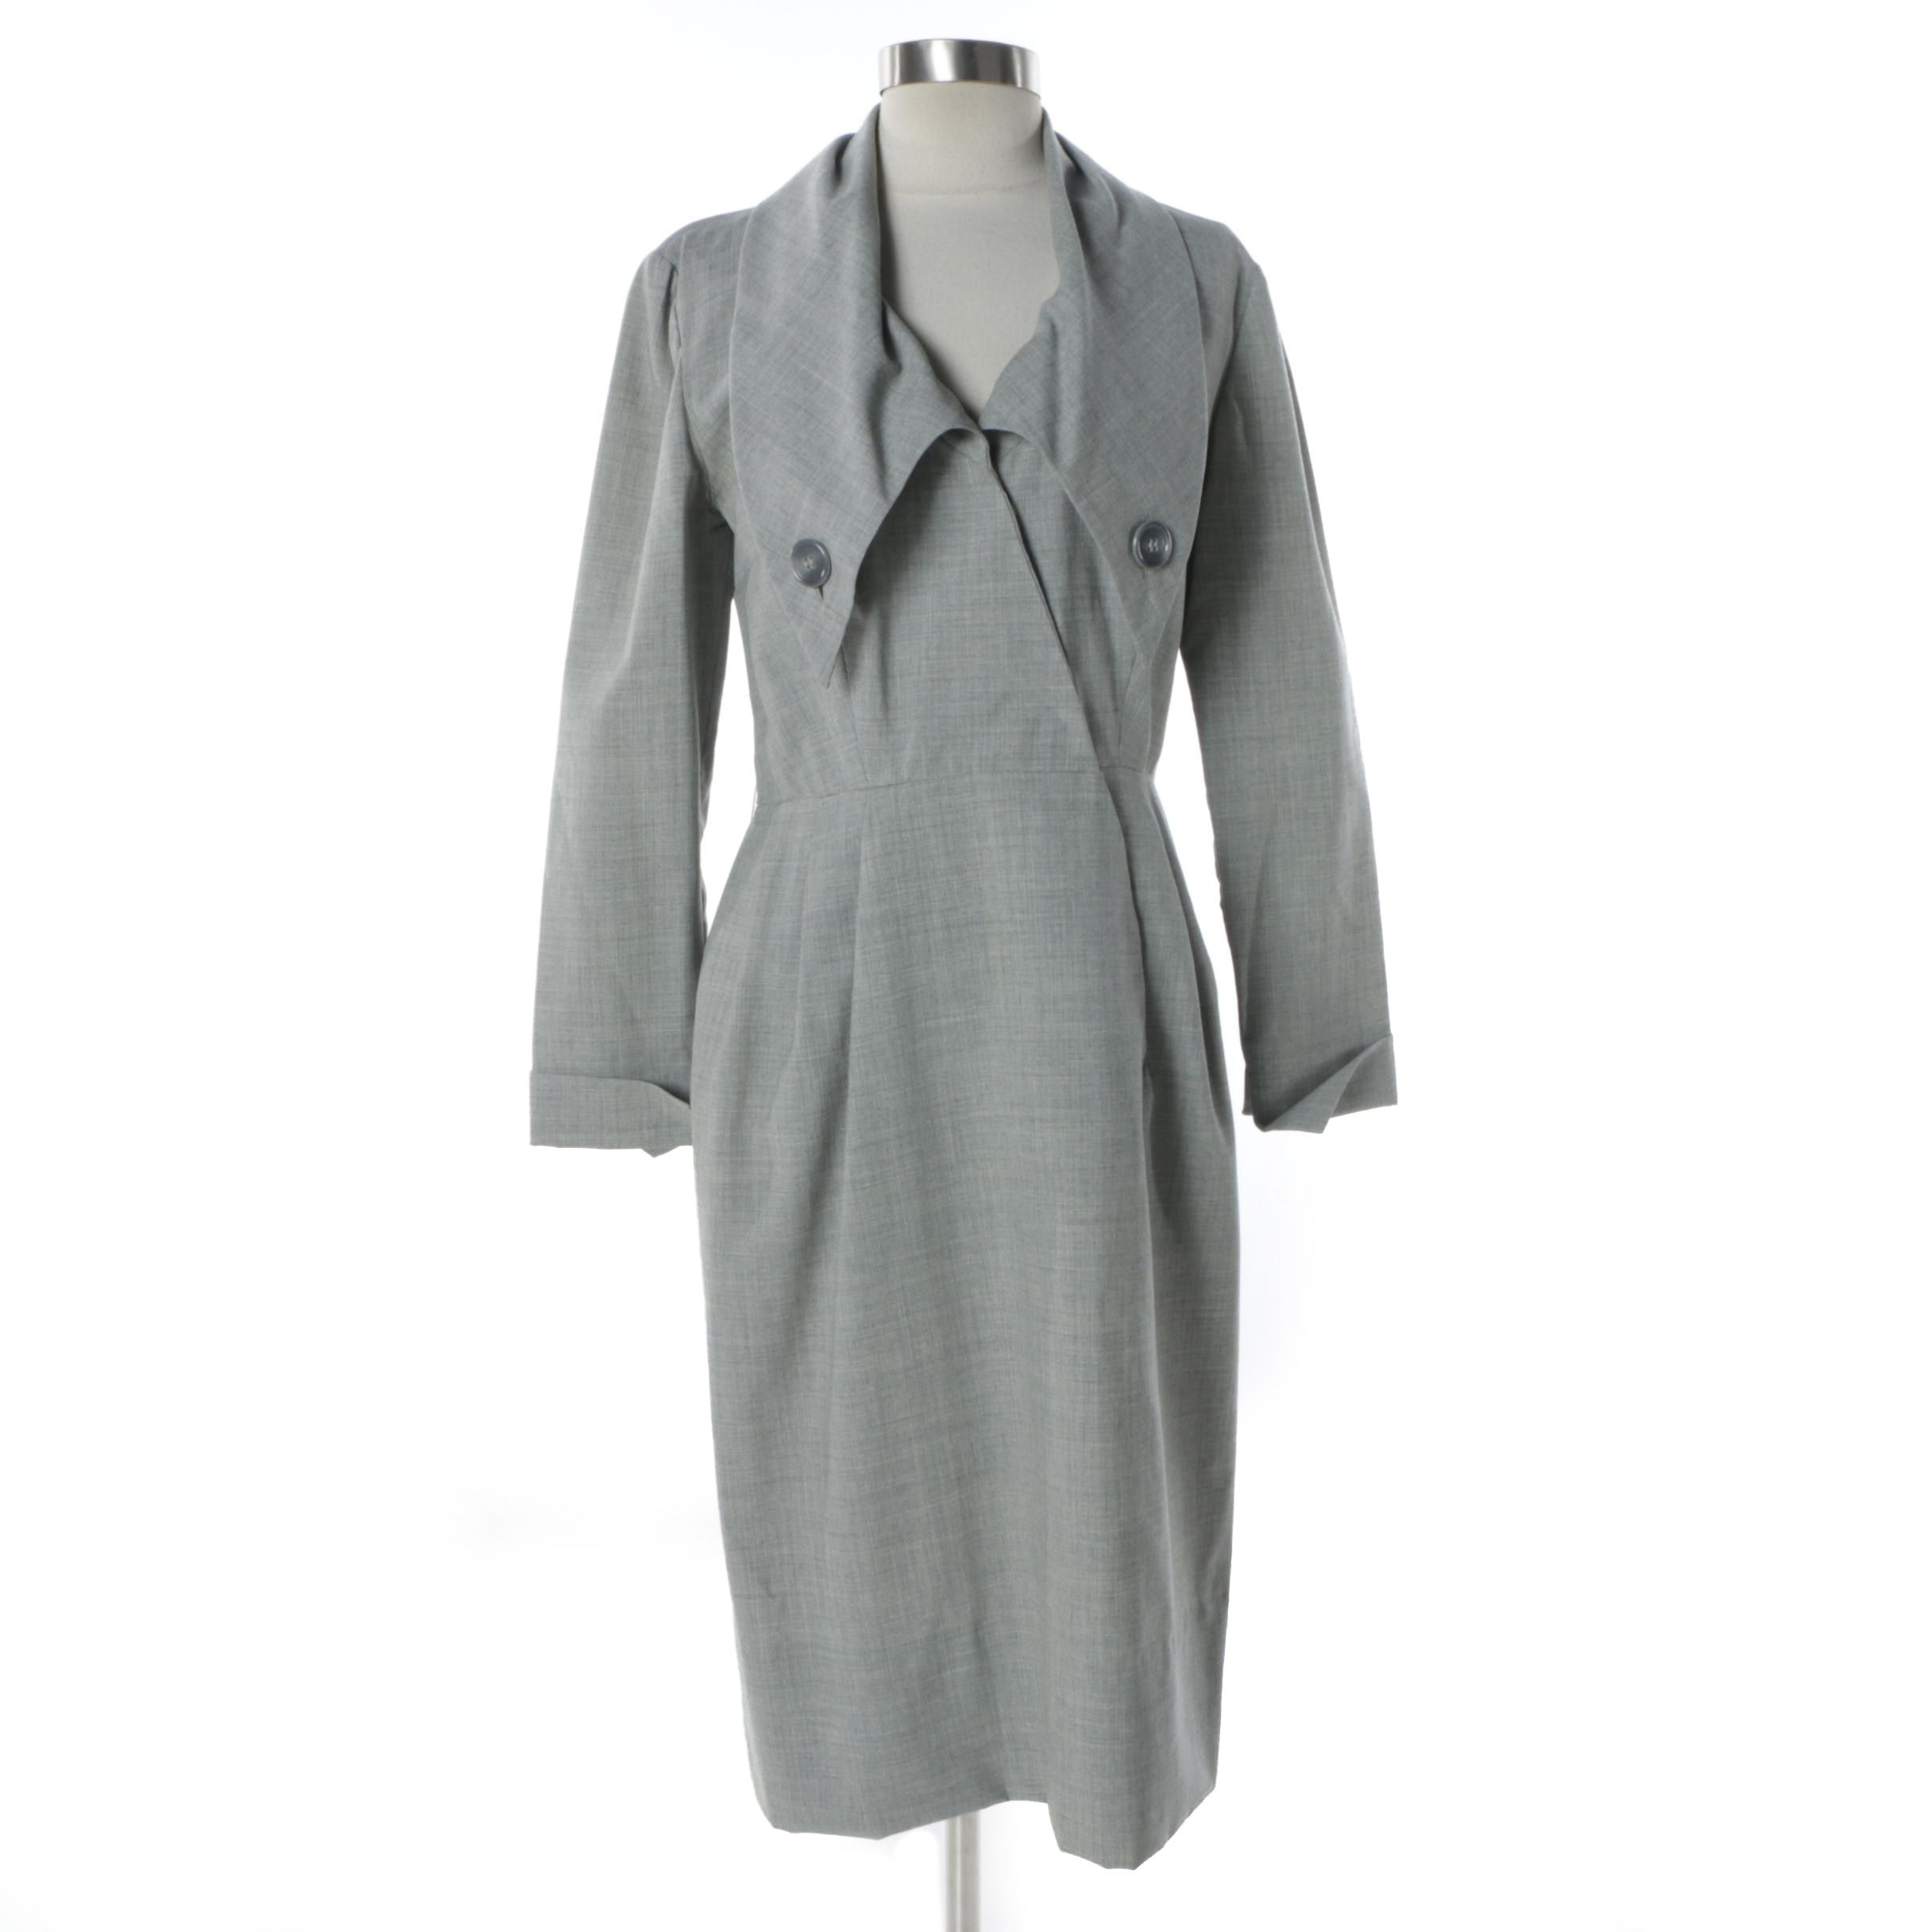 1970s Vintage Christian Dior Grey Dress with Plunging Collar and Oversized Lapel